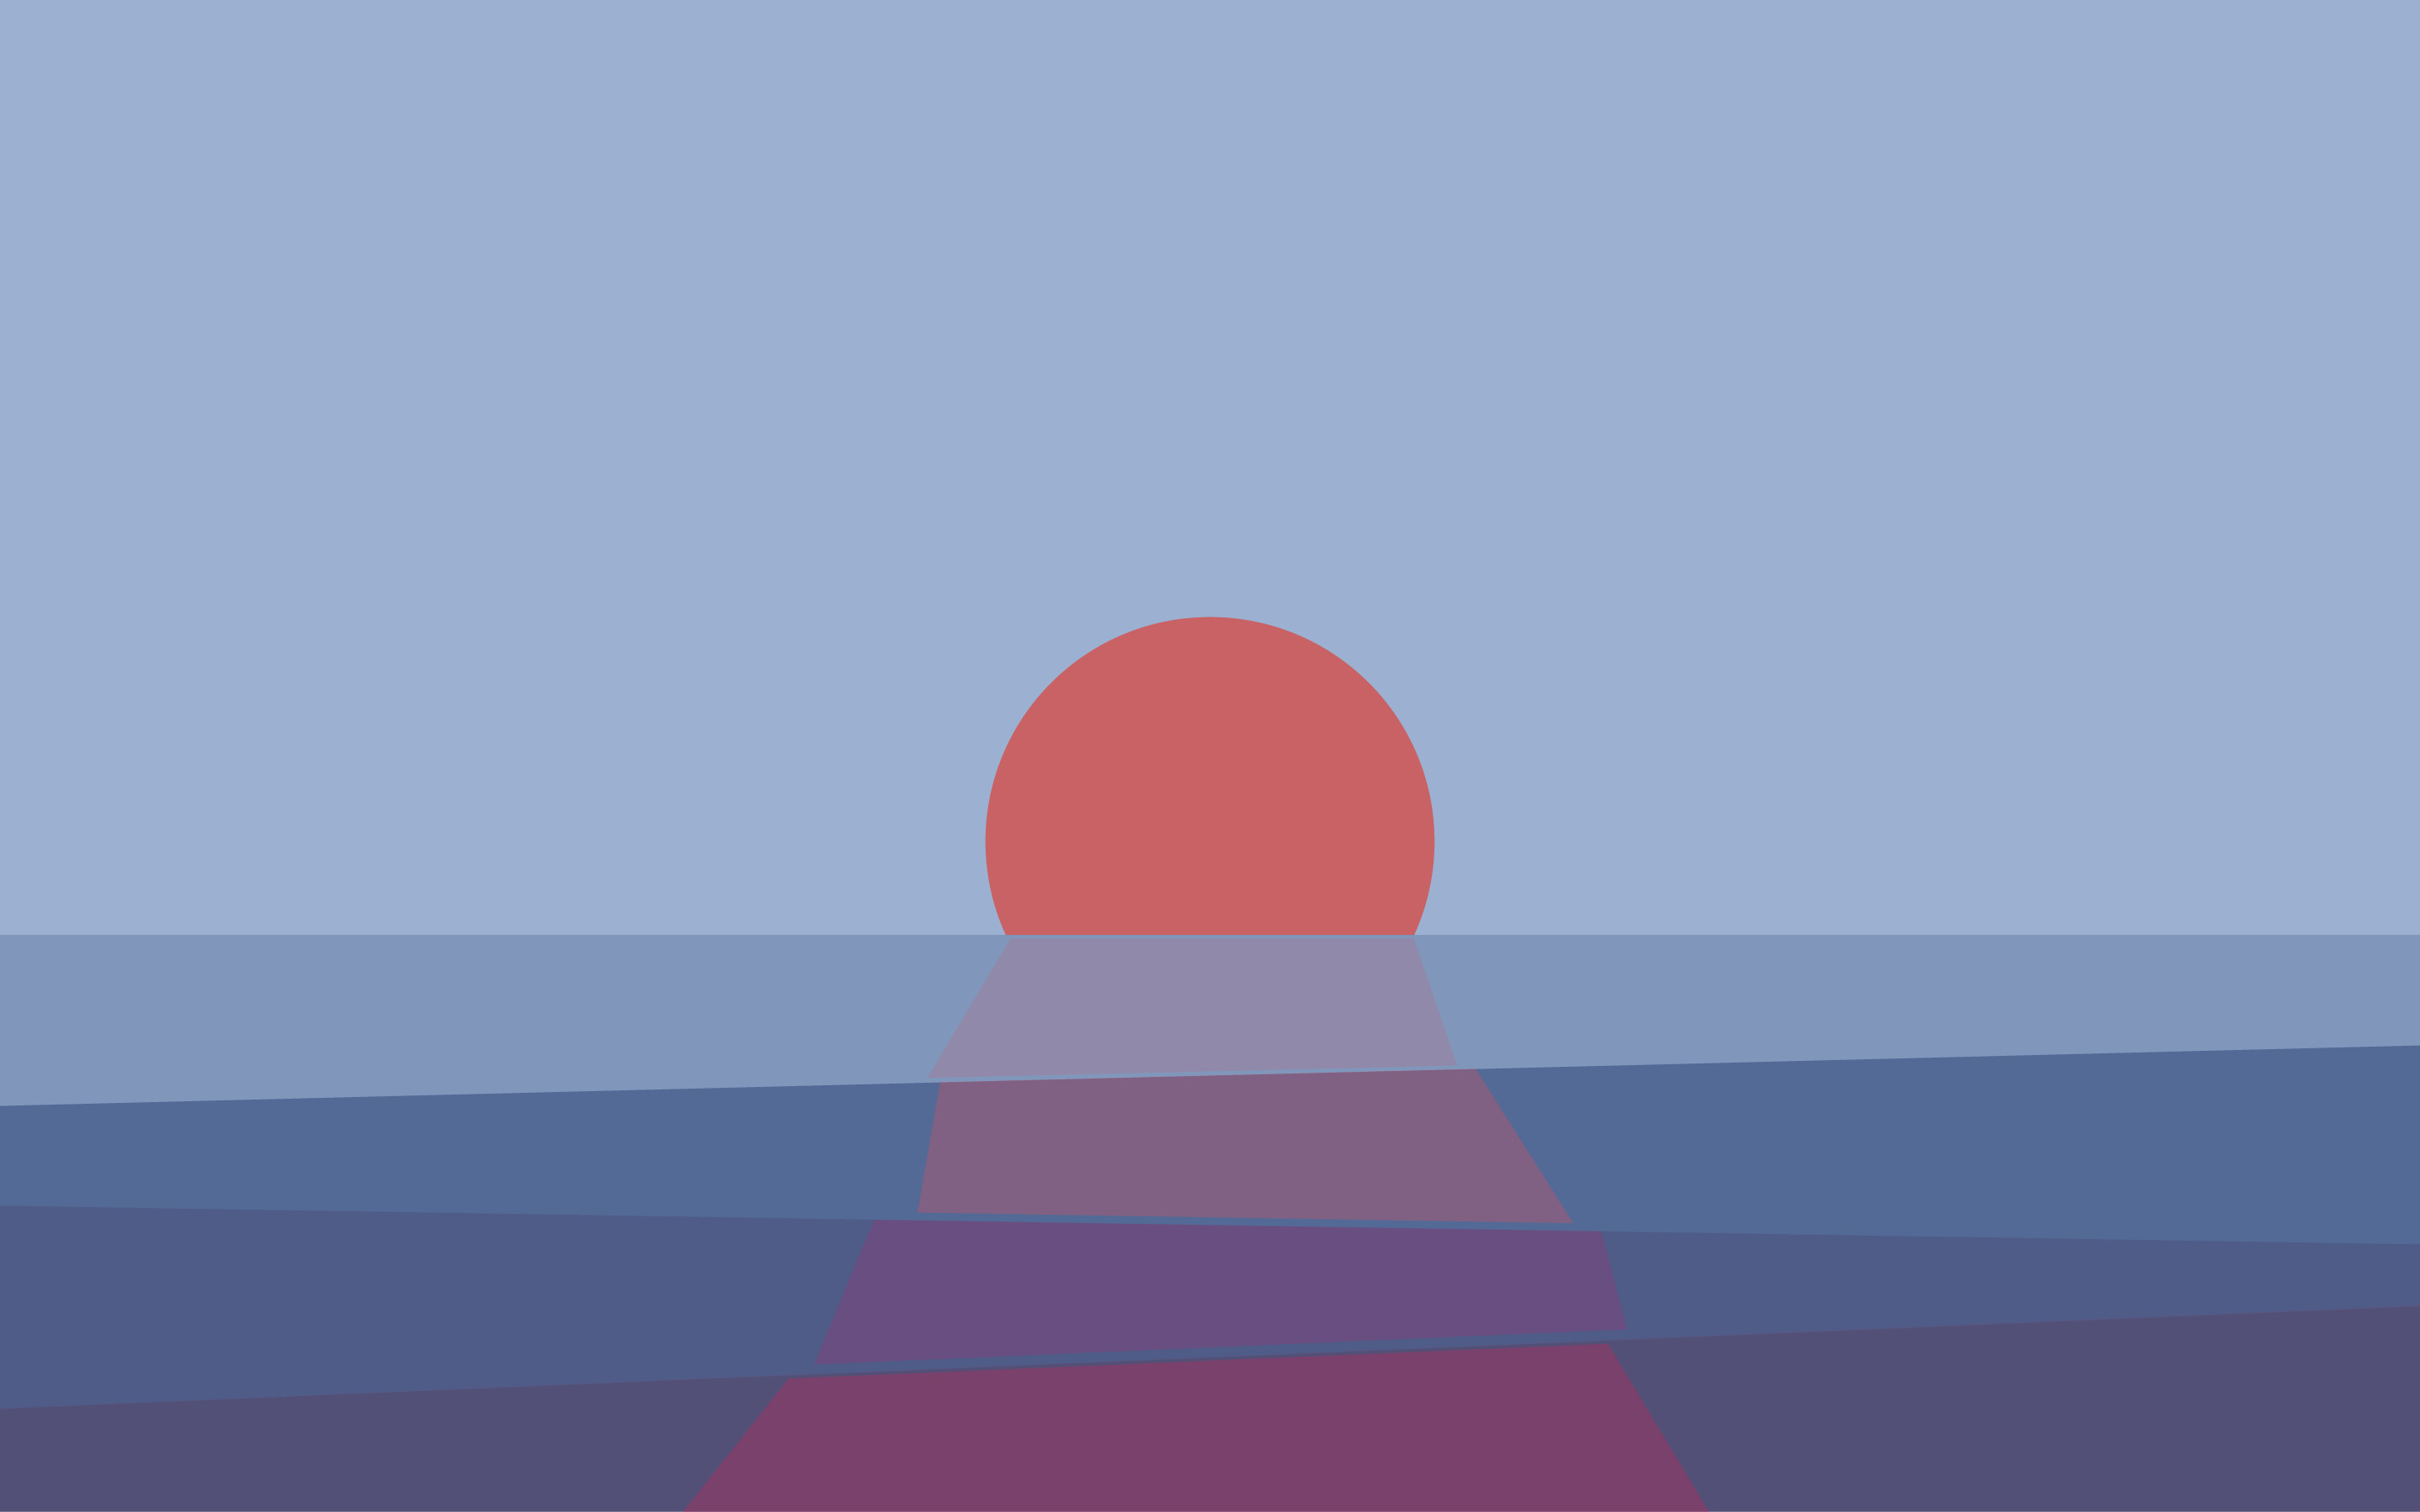 2880x1800 Tumblr Static Summer Sunset Created By Marilou Poly Lakeside Wall Whiteonblue Minimal Retro